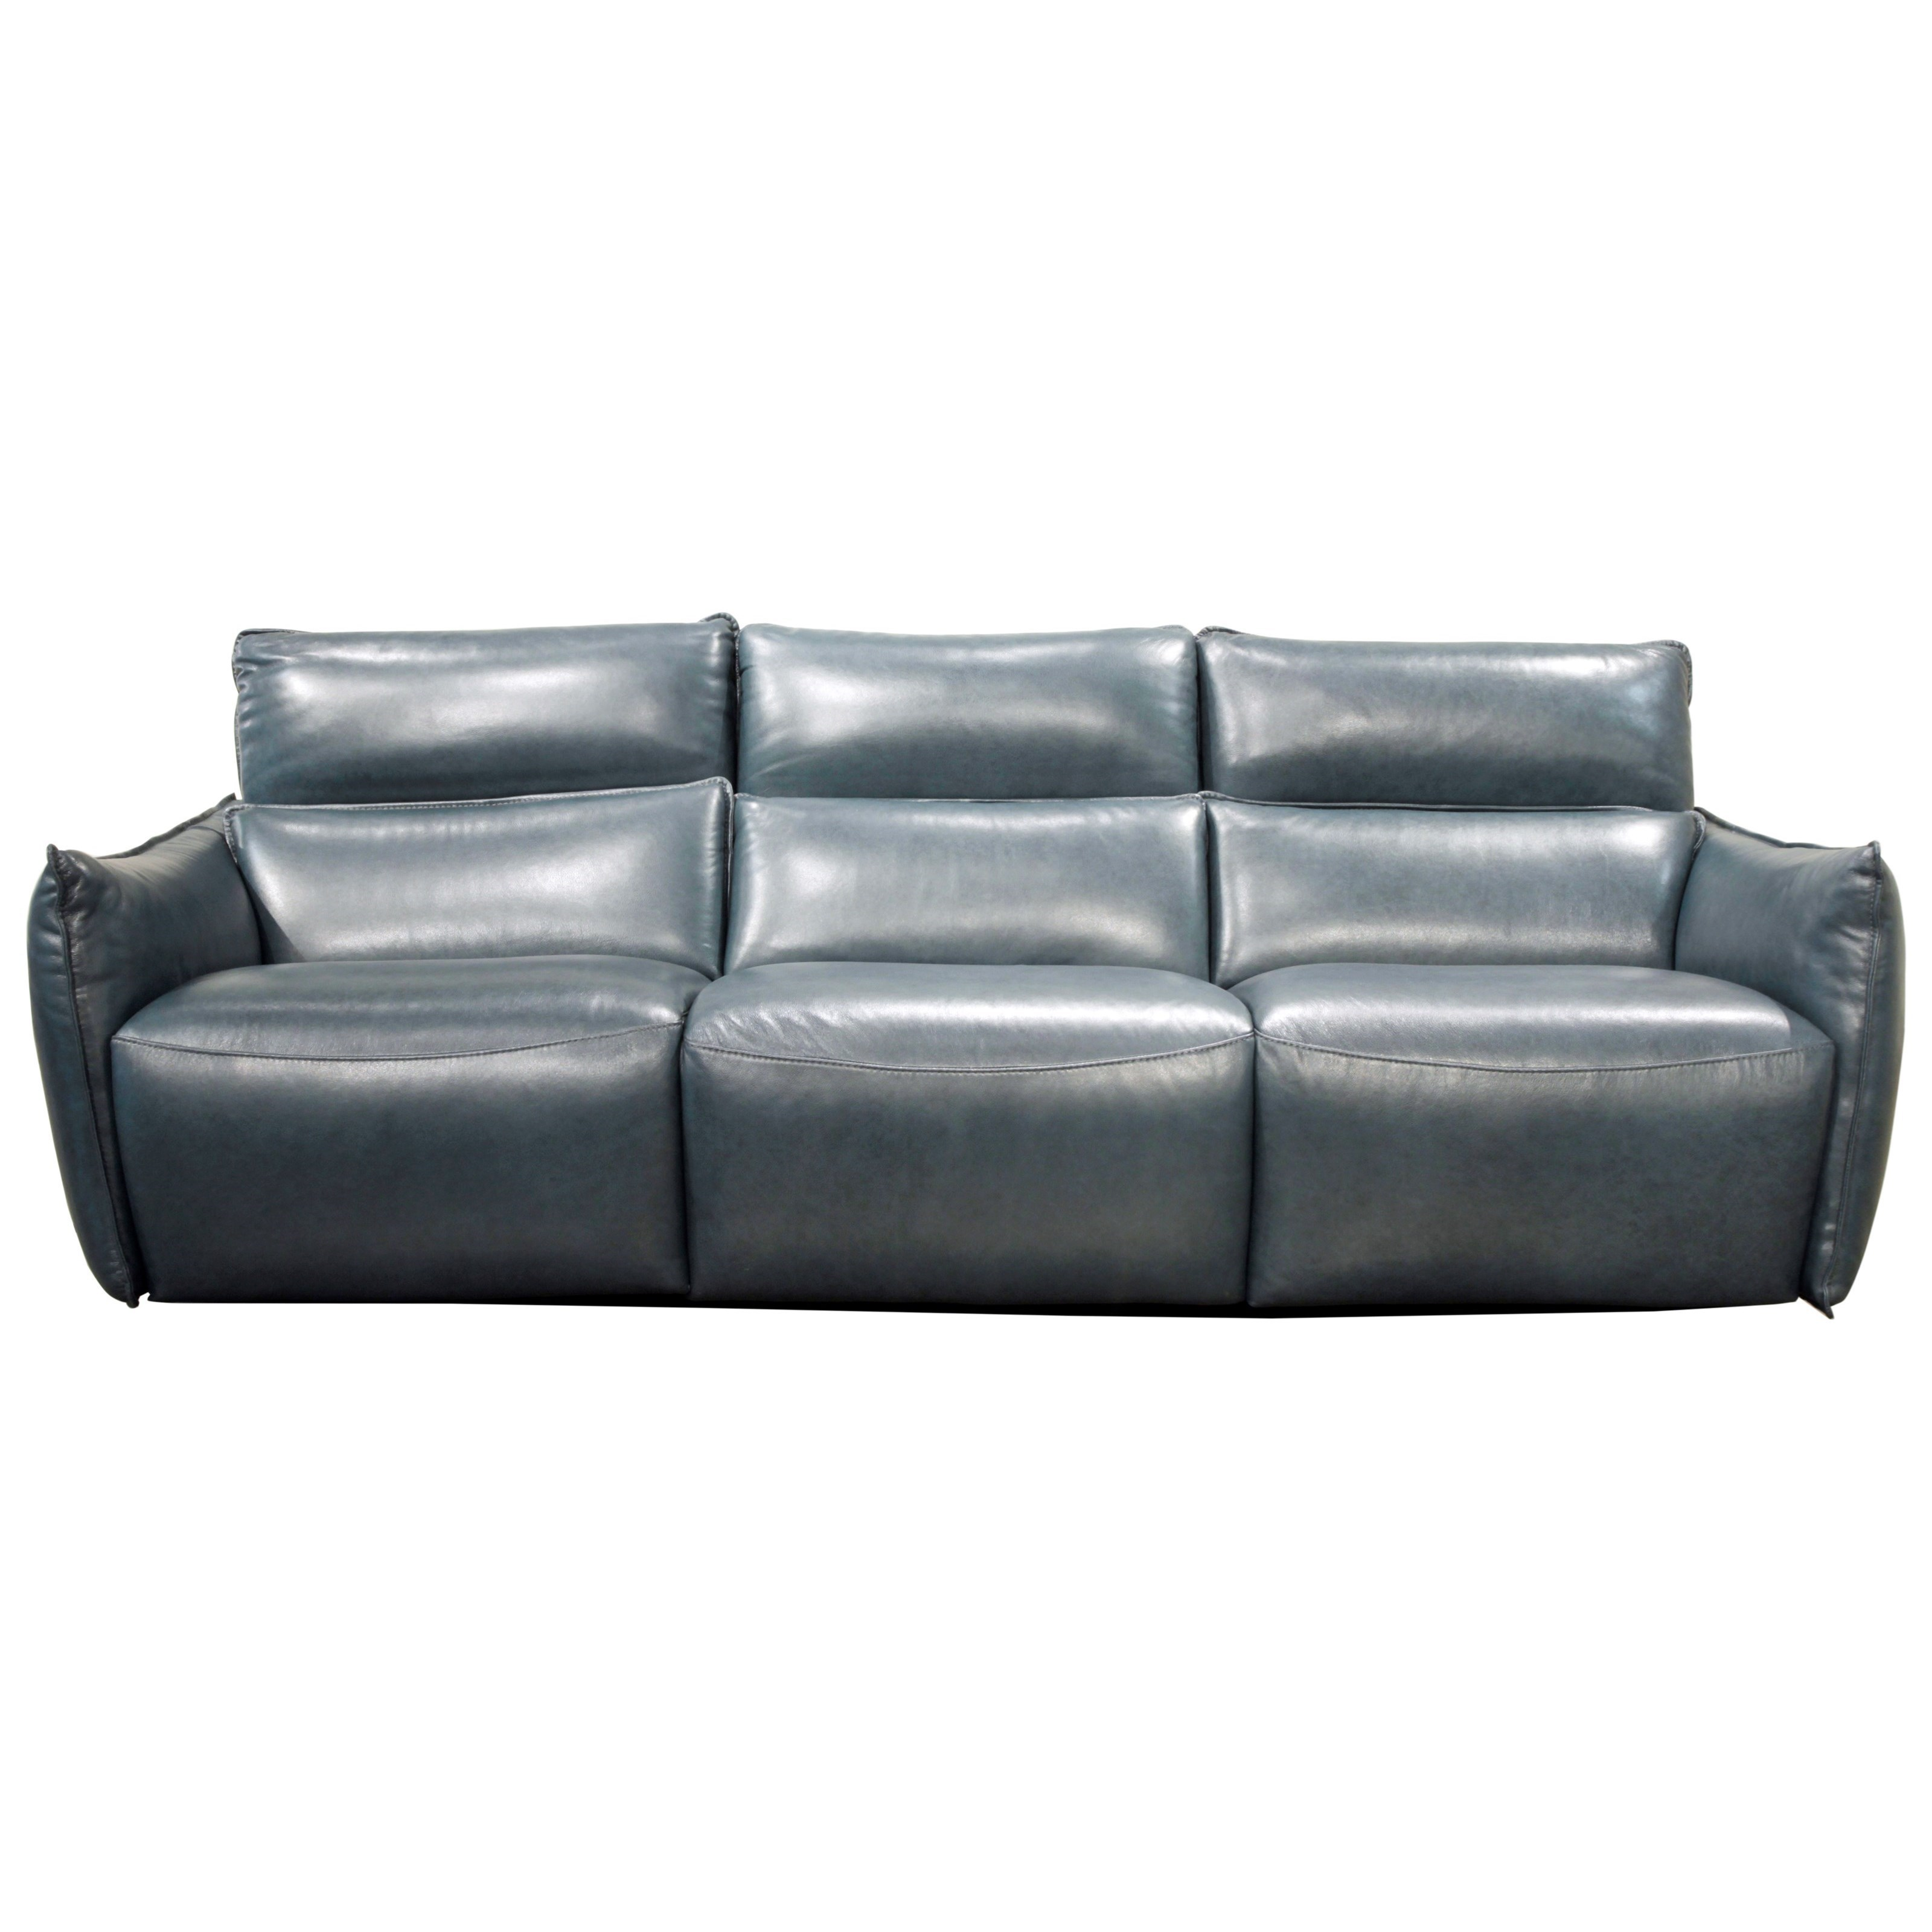 Delicieux Natuzzi Editions StuporePower Reclining 3 Seat Sectional ...